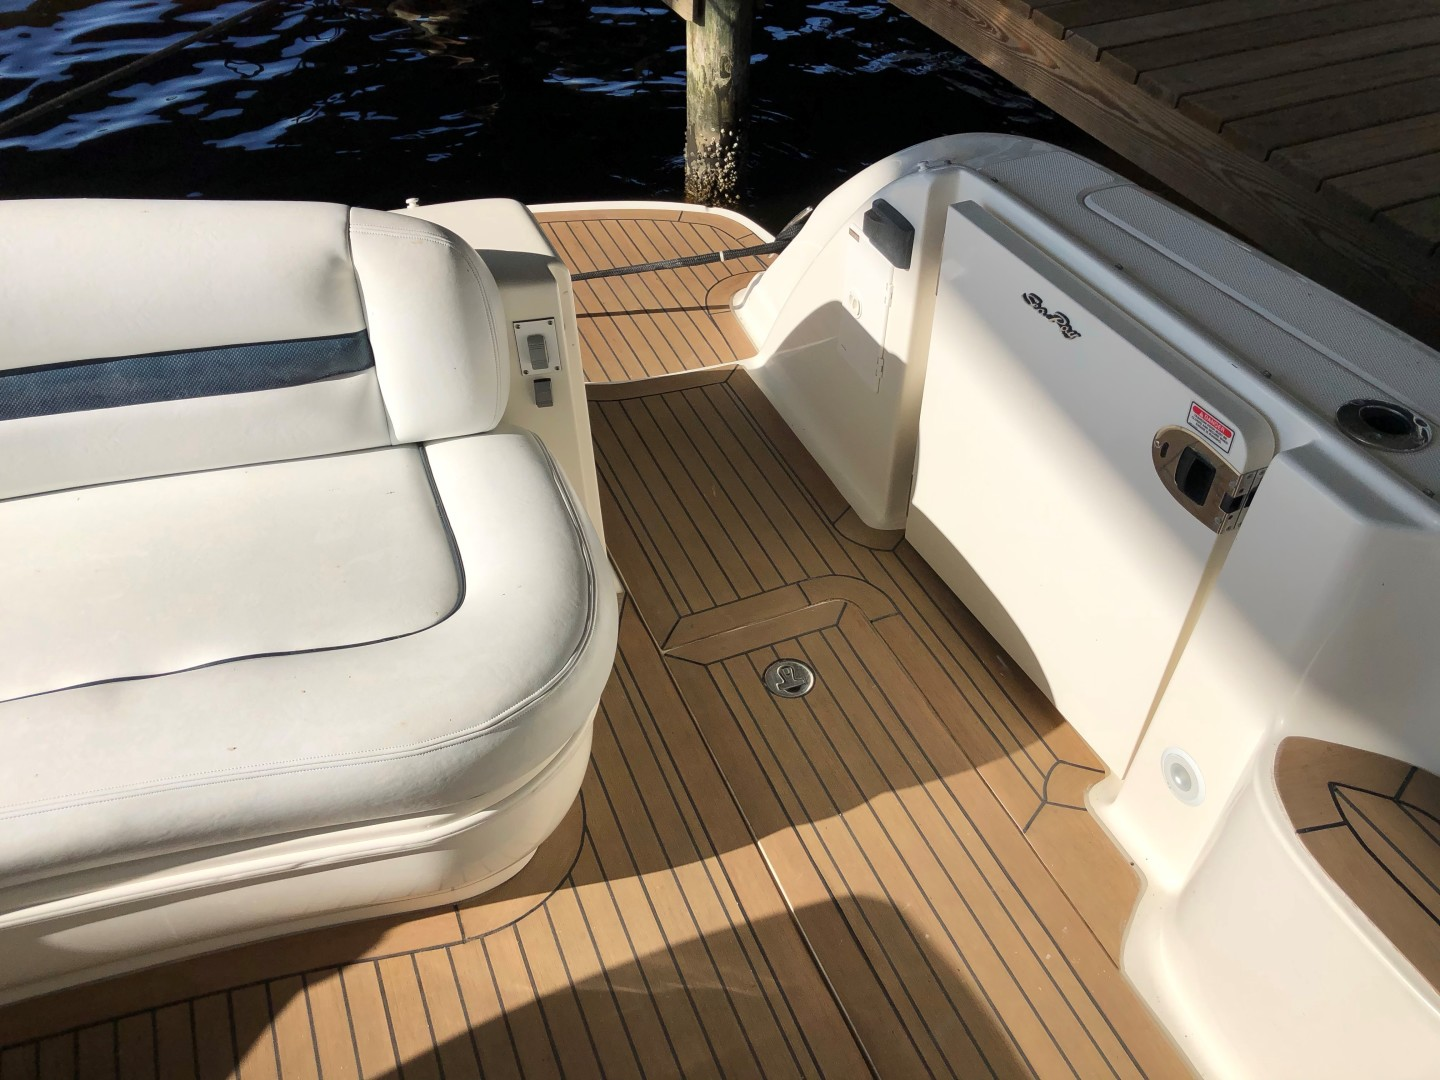 Sea Ray 42 - The Beat Goes On - Transom Entry